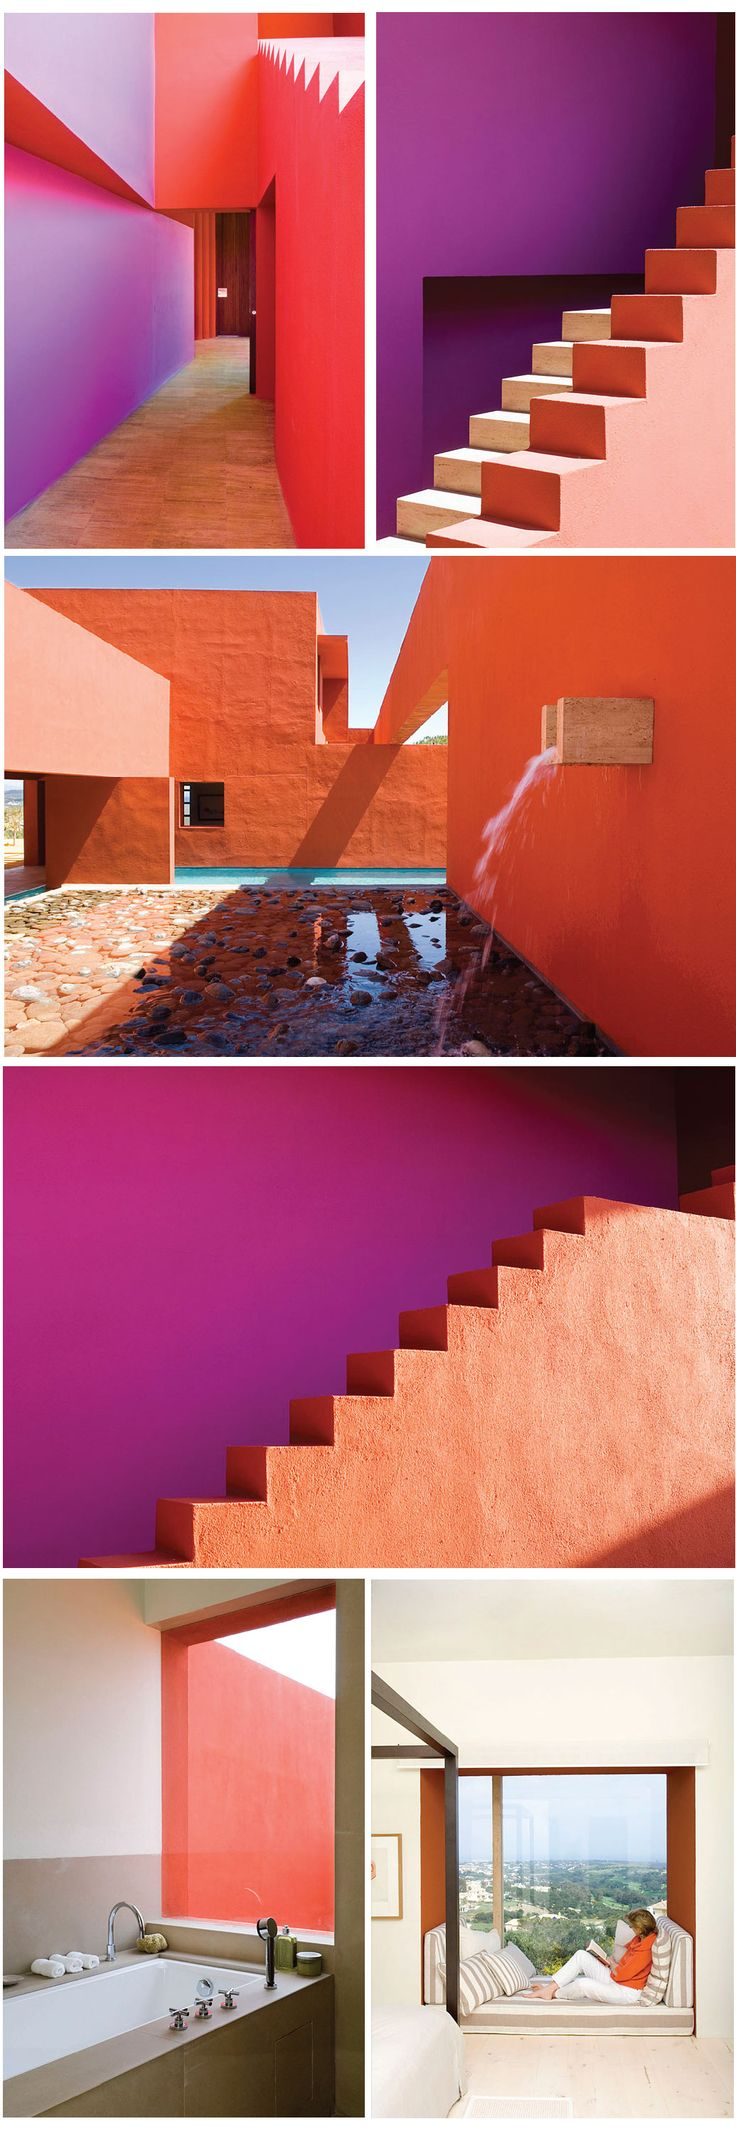 Admiring the bold color blocking created on the exterior surfaces of this residence in Legorreta, Spain.